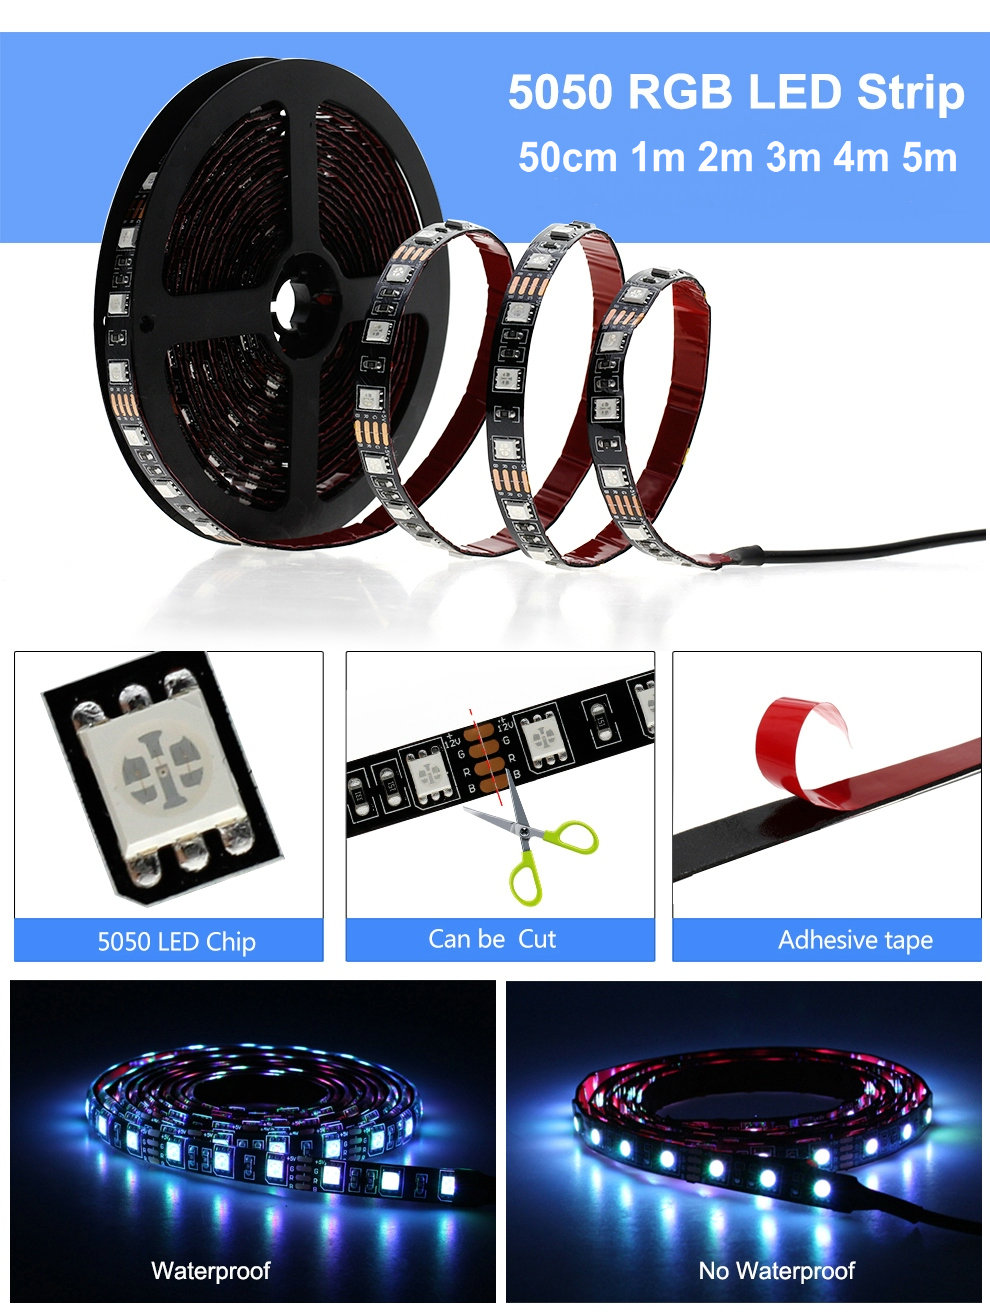 Had4f35b2ae4e402caf1d3fa42106ae57E USB LED Strip RGB Changeable LED TV Background Lighting 50CM 1M 2M 3M 4M 5M DIY 5V Flexible LED Light Tape RGB LED Strip 5050.